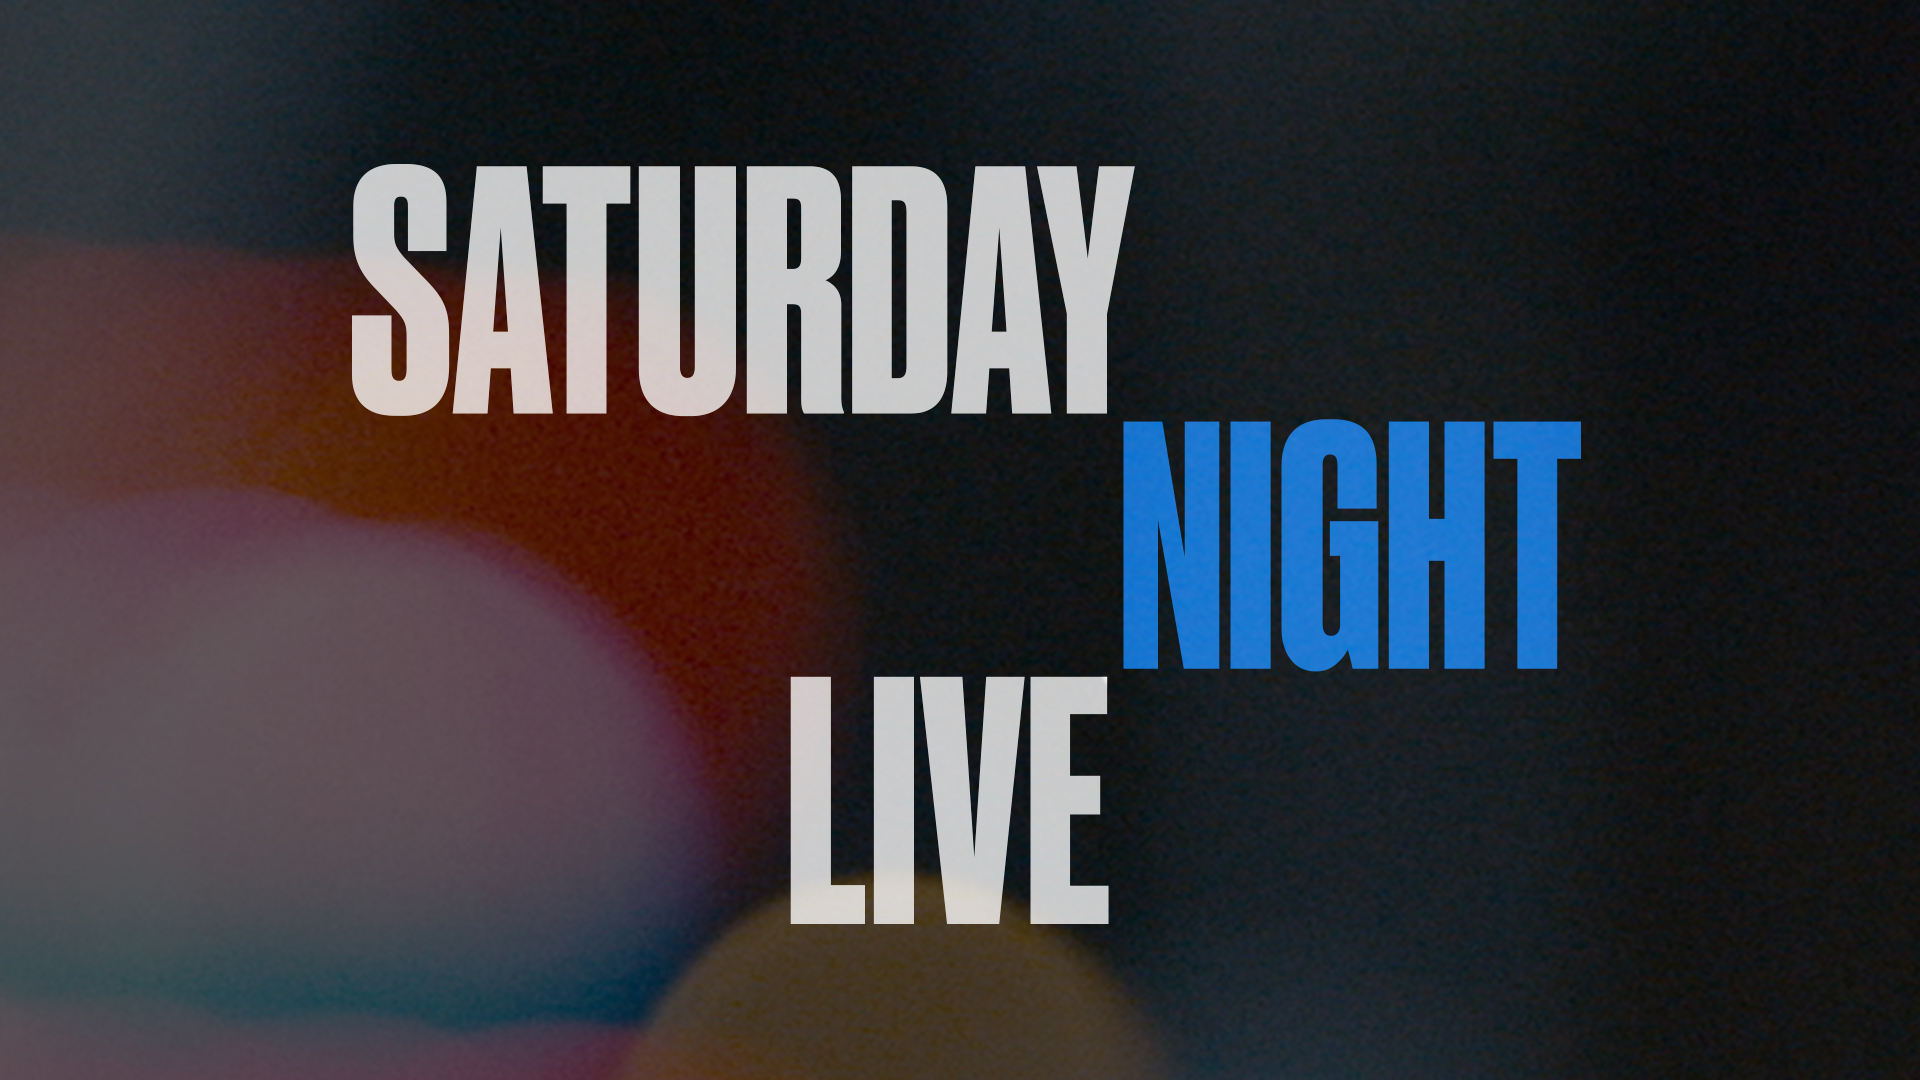 How We Got on Saturday Night Live By the Sea Communications 1920x1080